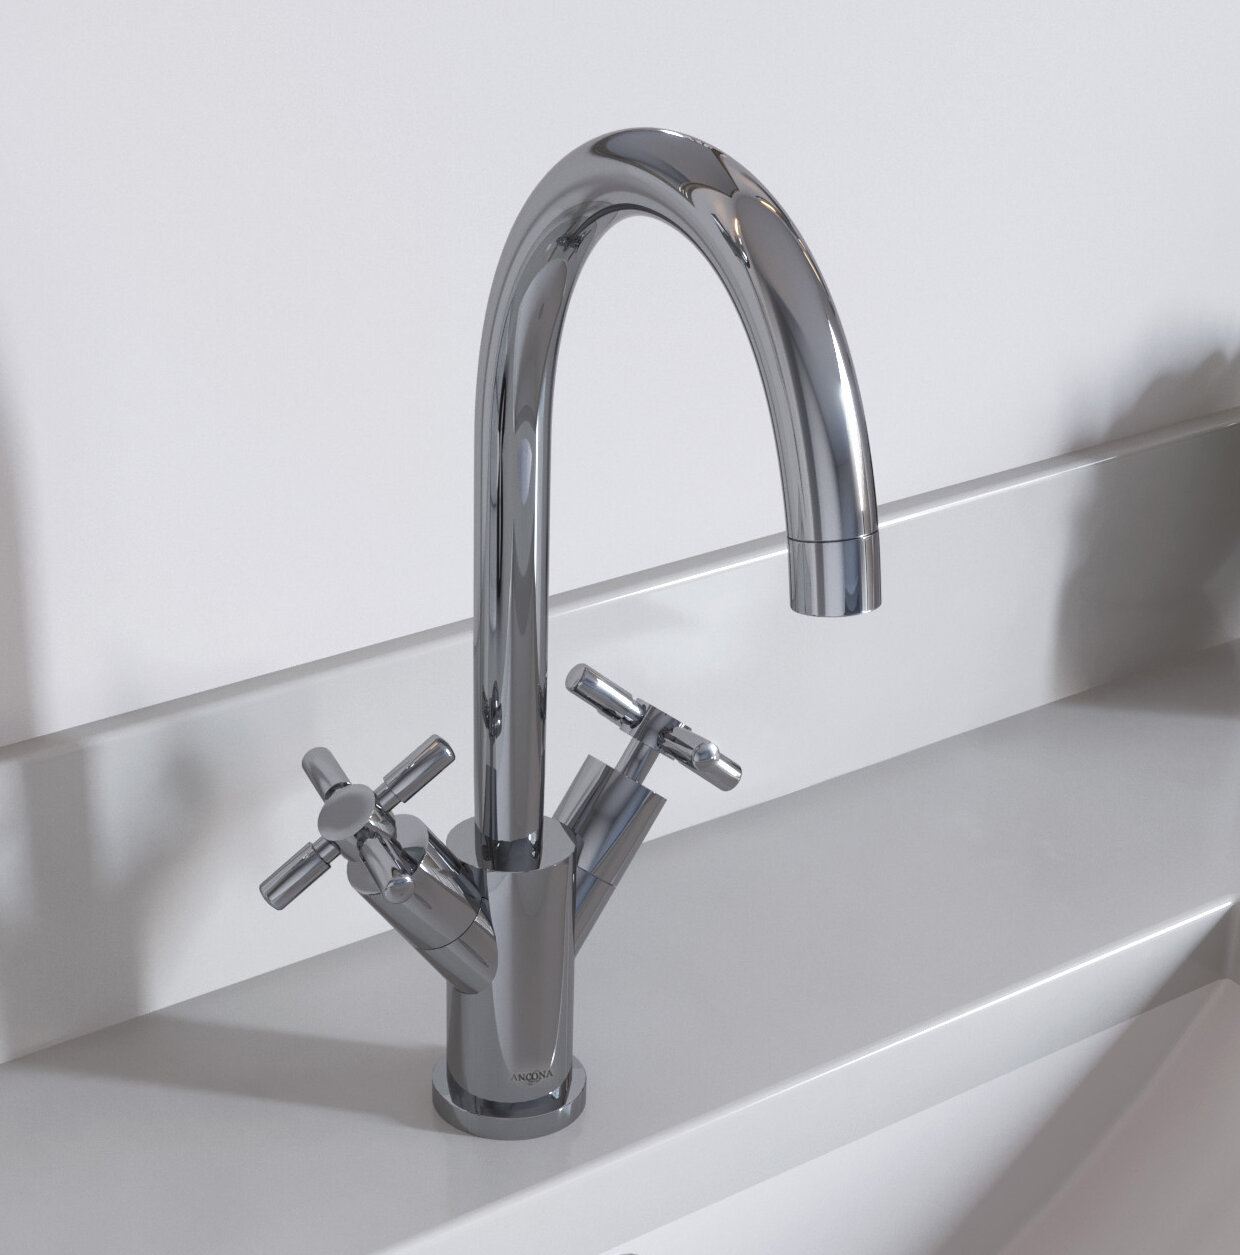 Ancona Prima Standard Bathroom Faucet with Optional Deck Plate & Reviews | Wayfair.ca